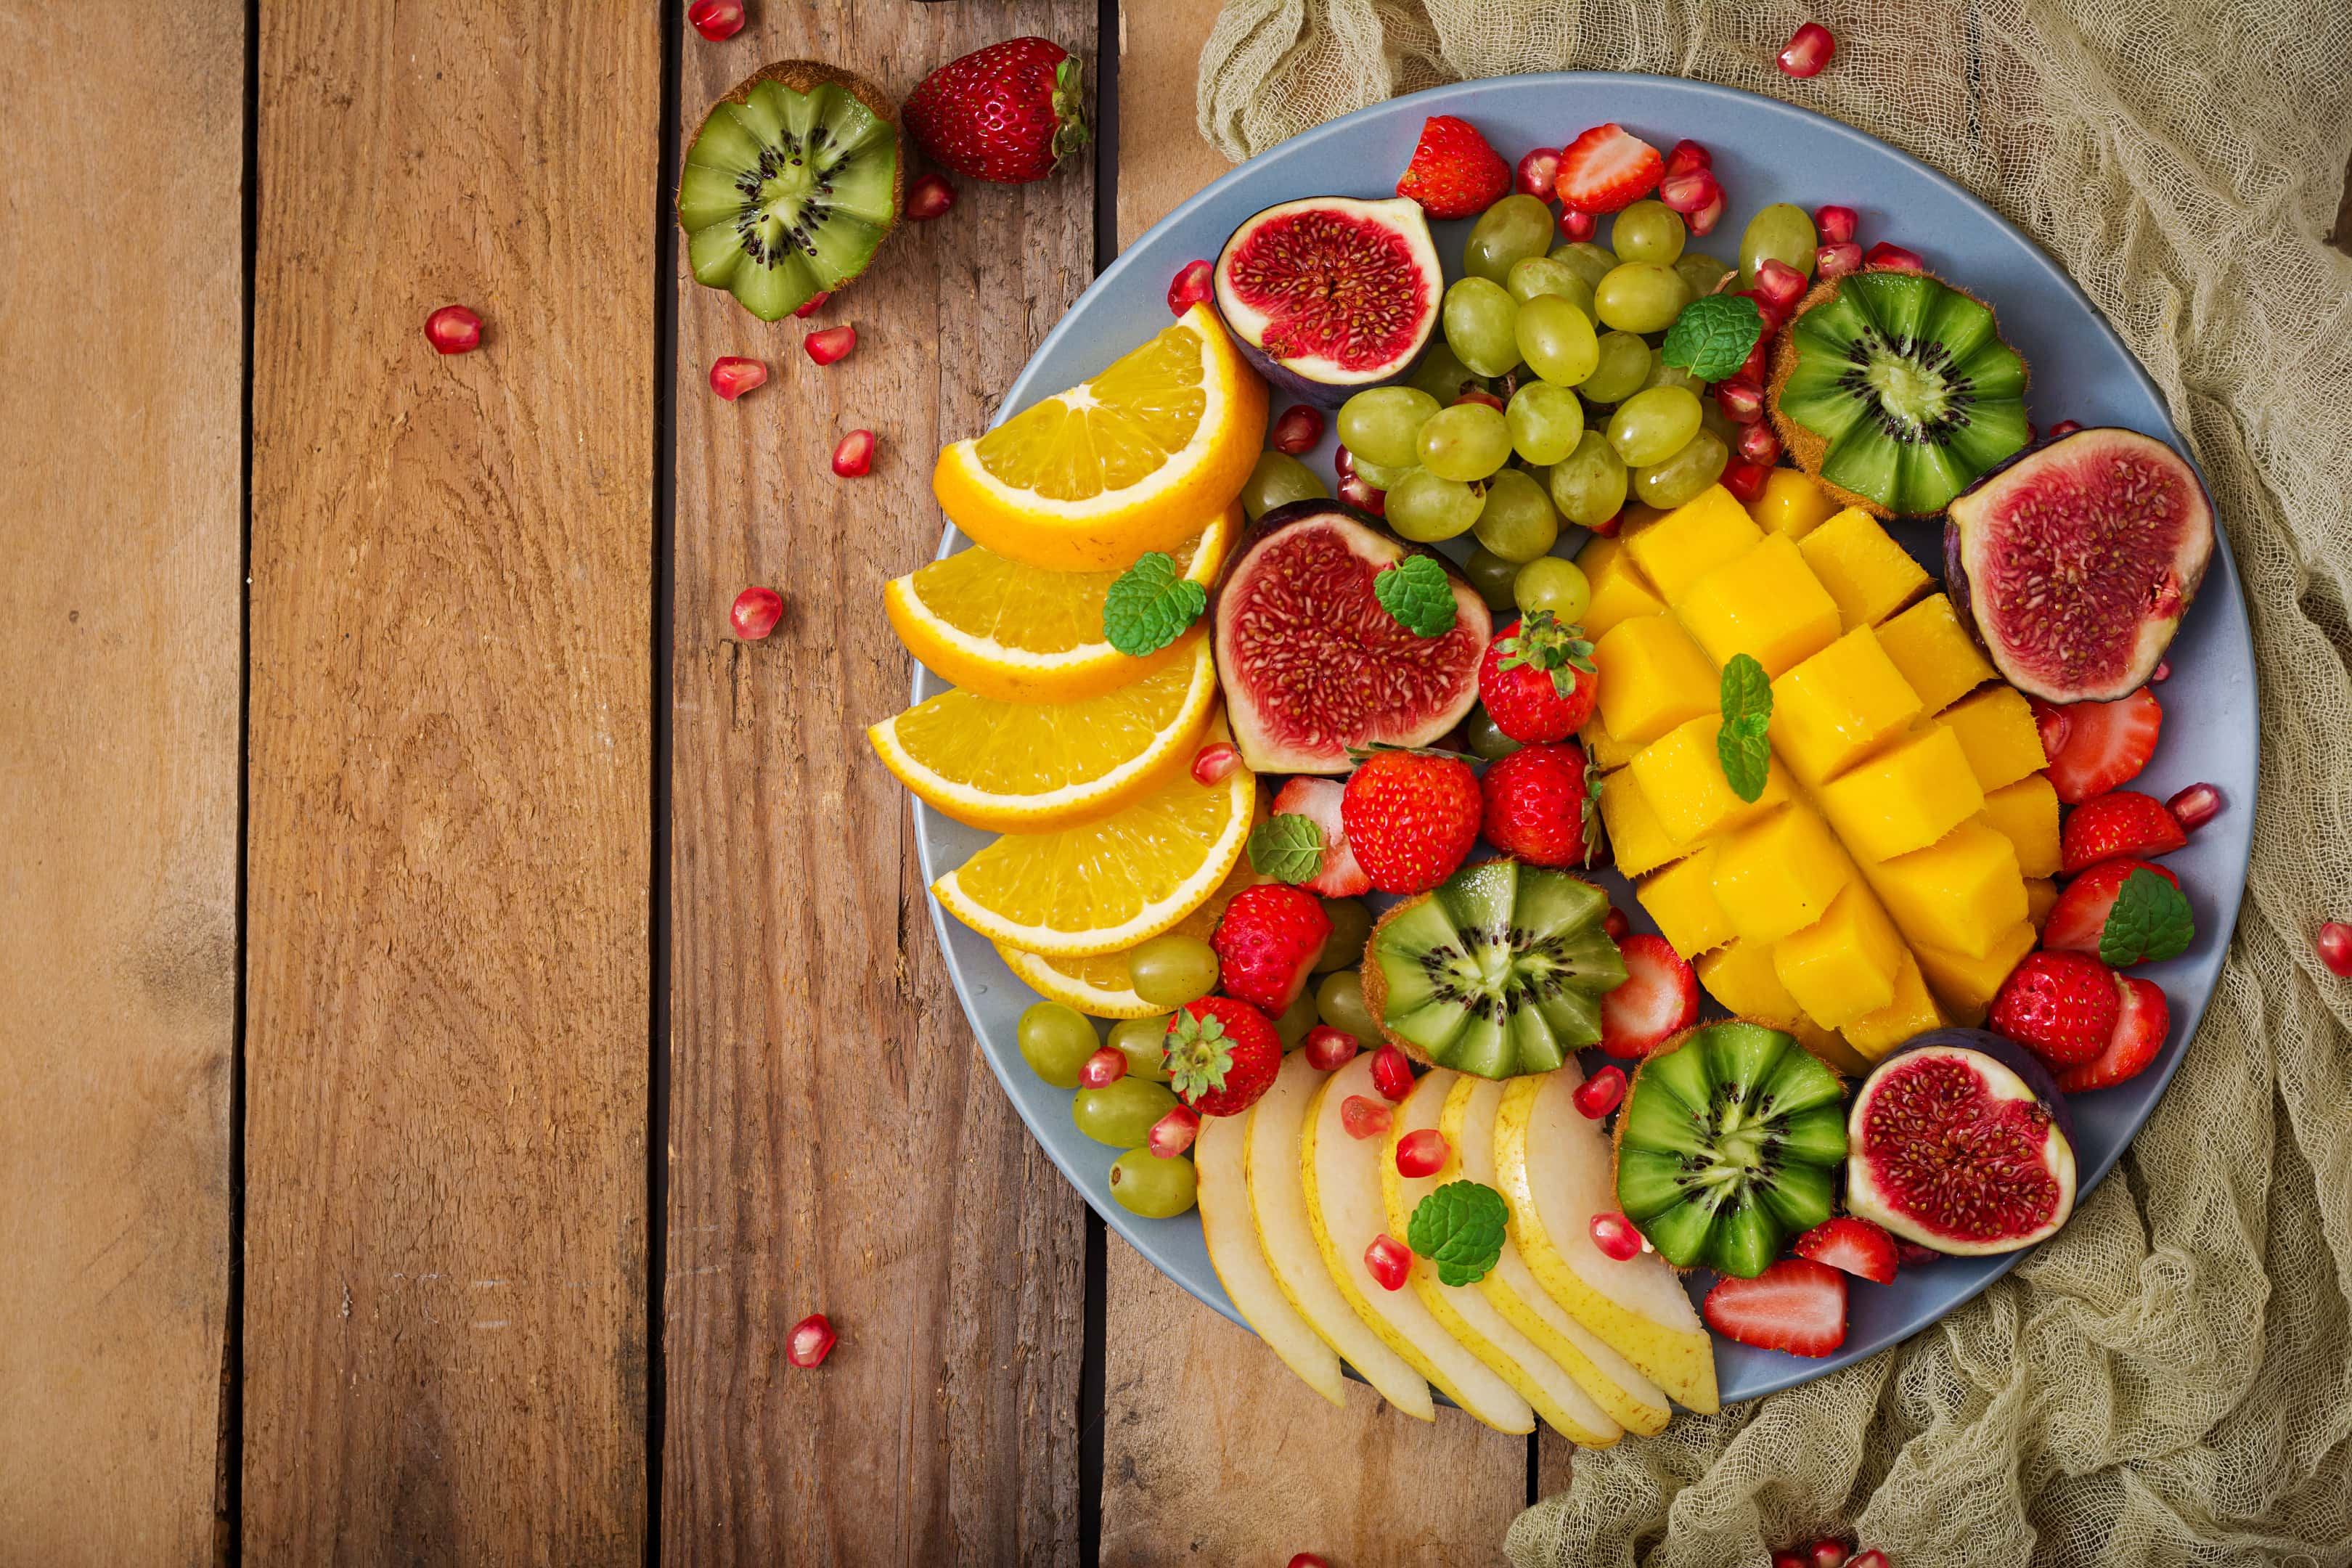 Platter of fruits and berries. Mango, kiwi, fig, strawberry, grapes, pear and orange.